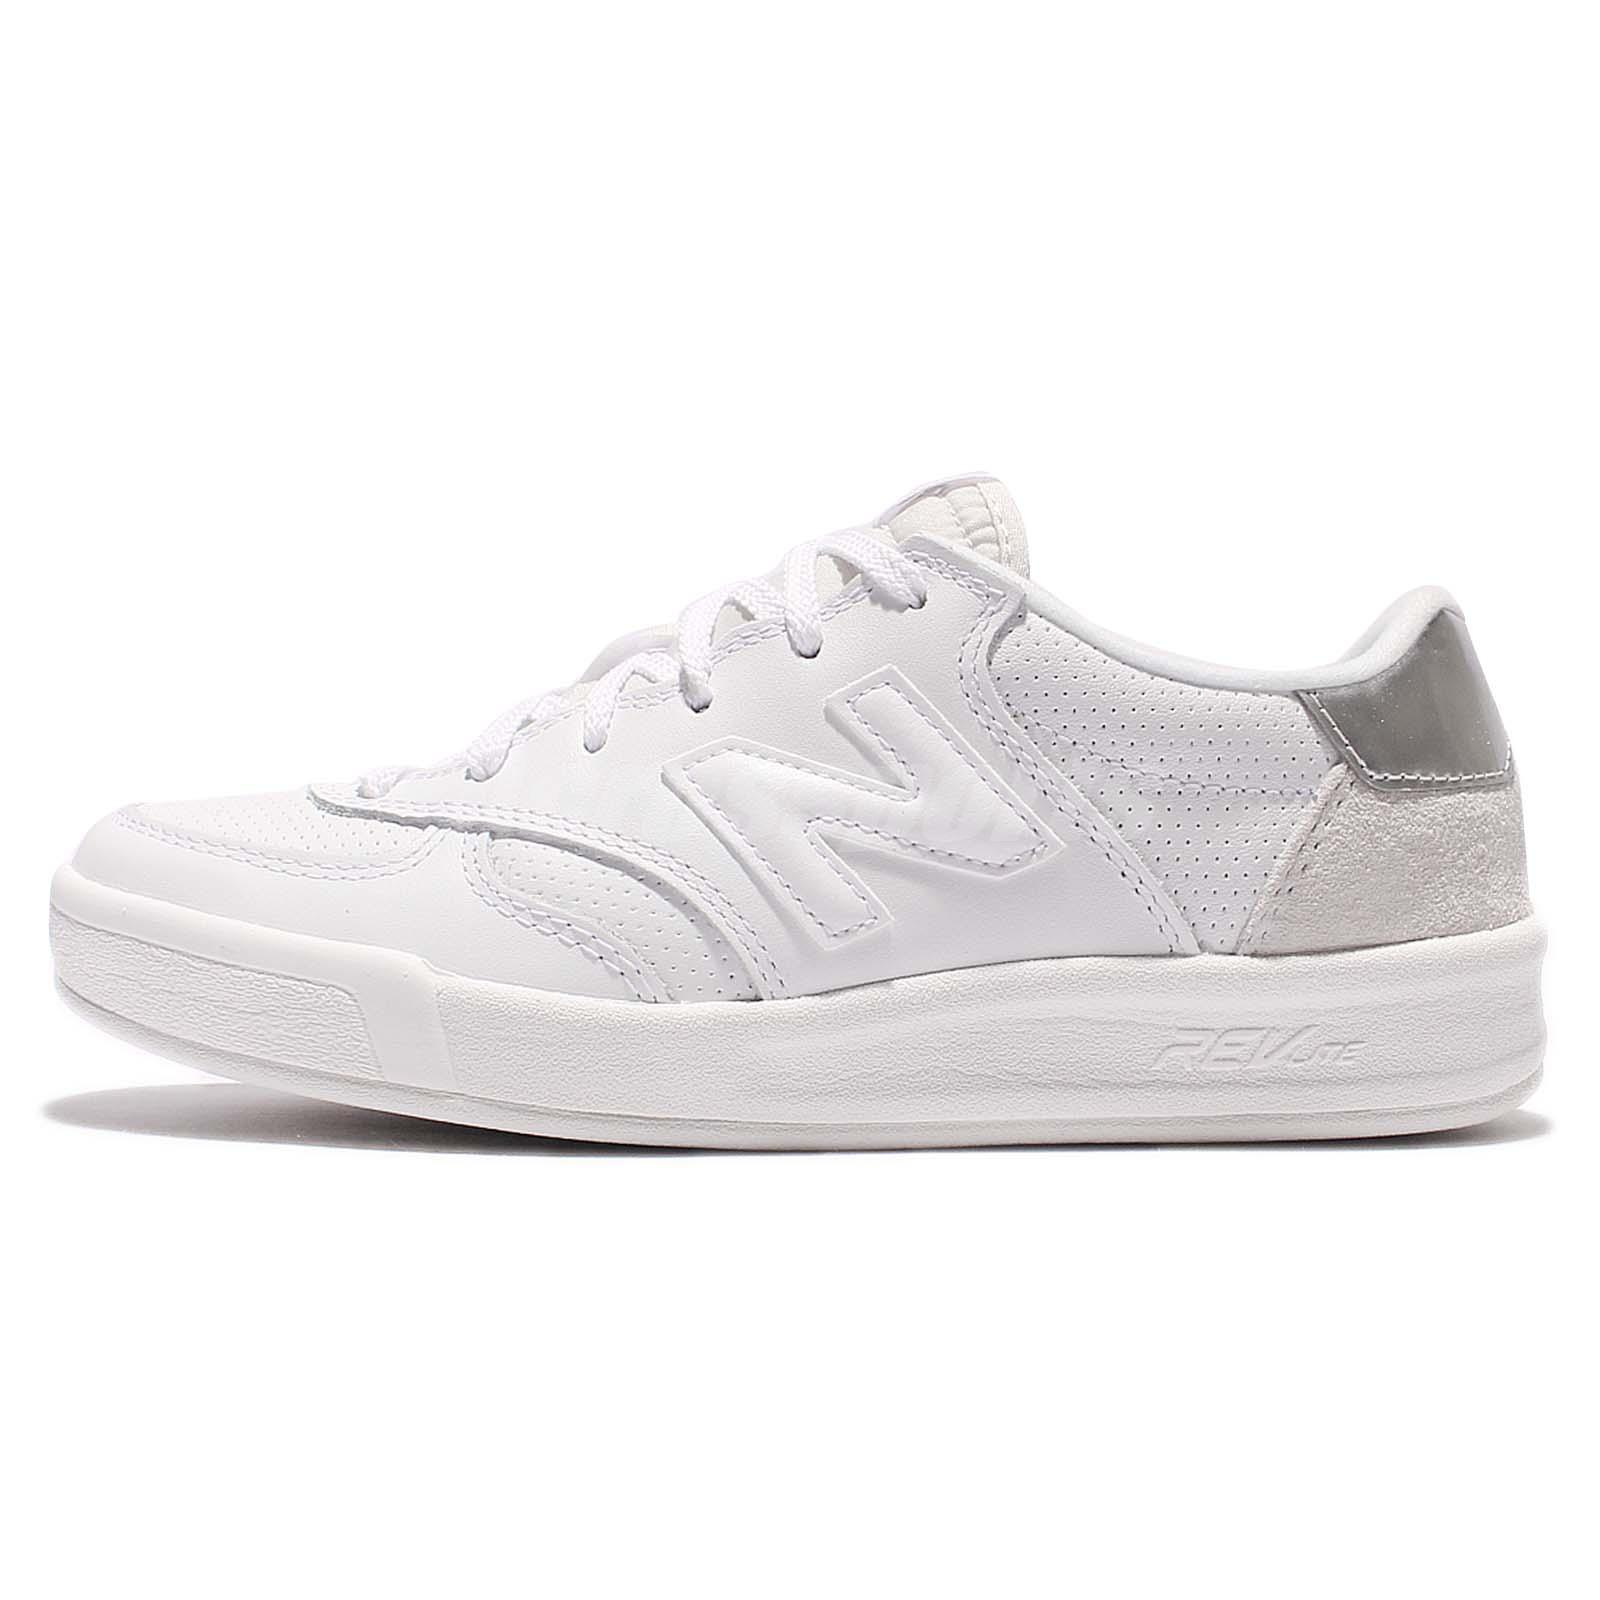 dbc65b8963 Details about New Balance WRT300WM D Wide White Leather Women Casual Shoes  Sneakers WRT300WMD